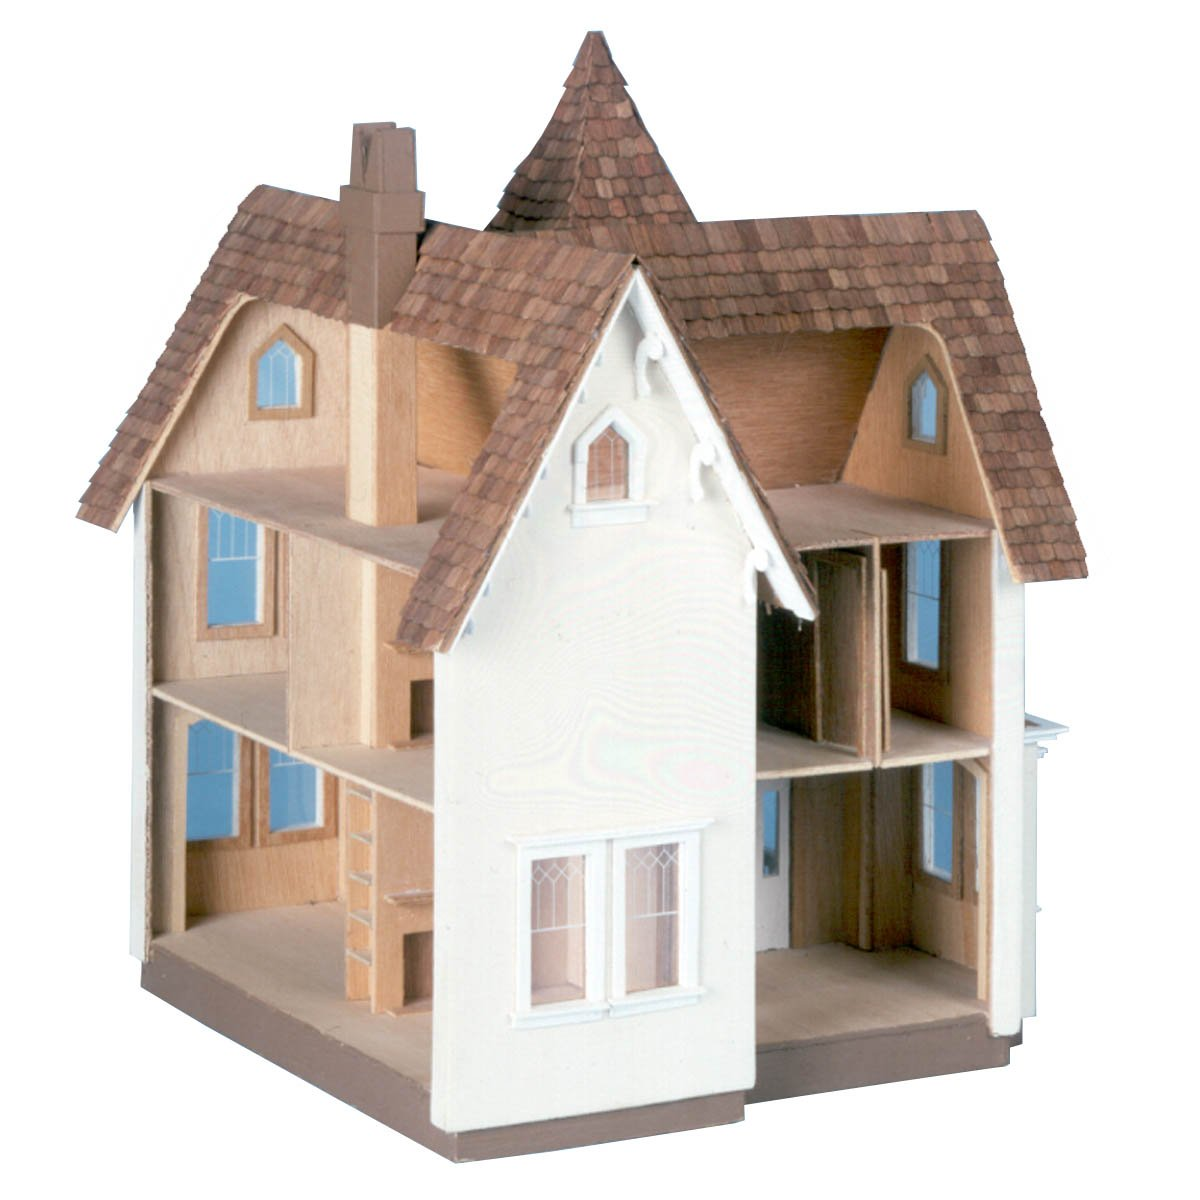 Skarla 39 s variety shop deals 1 24 scale victorian for Build your house